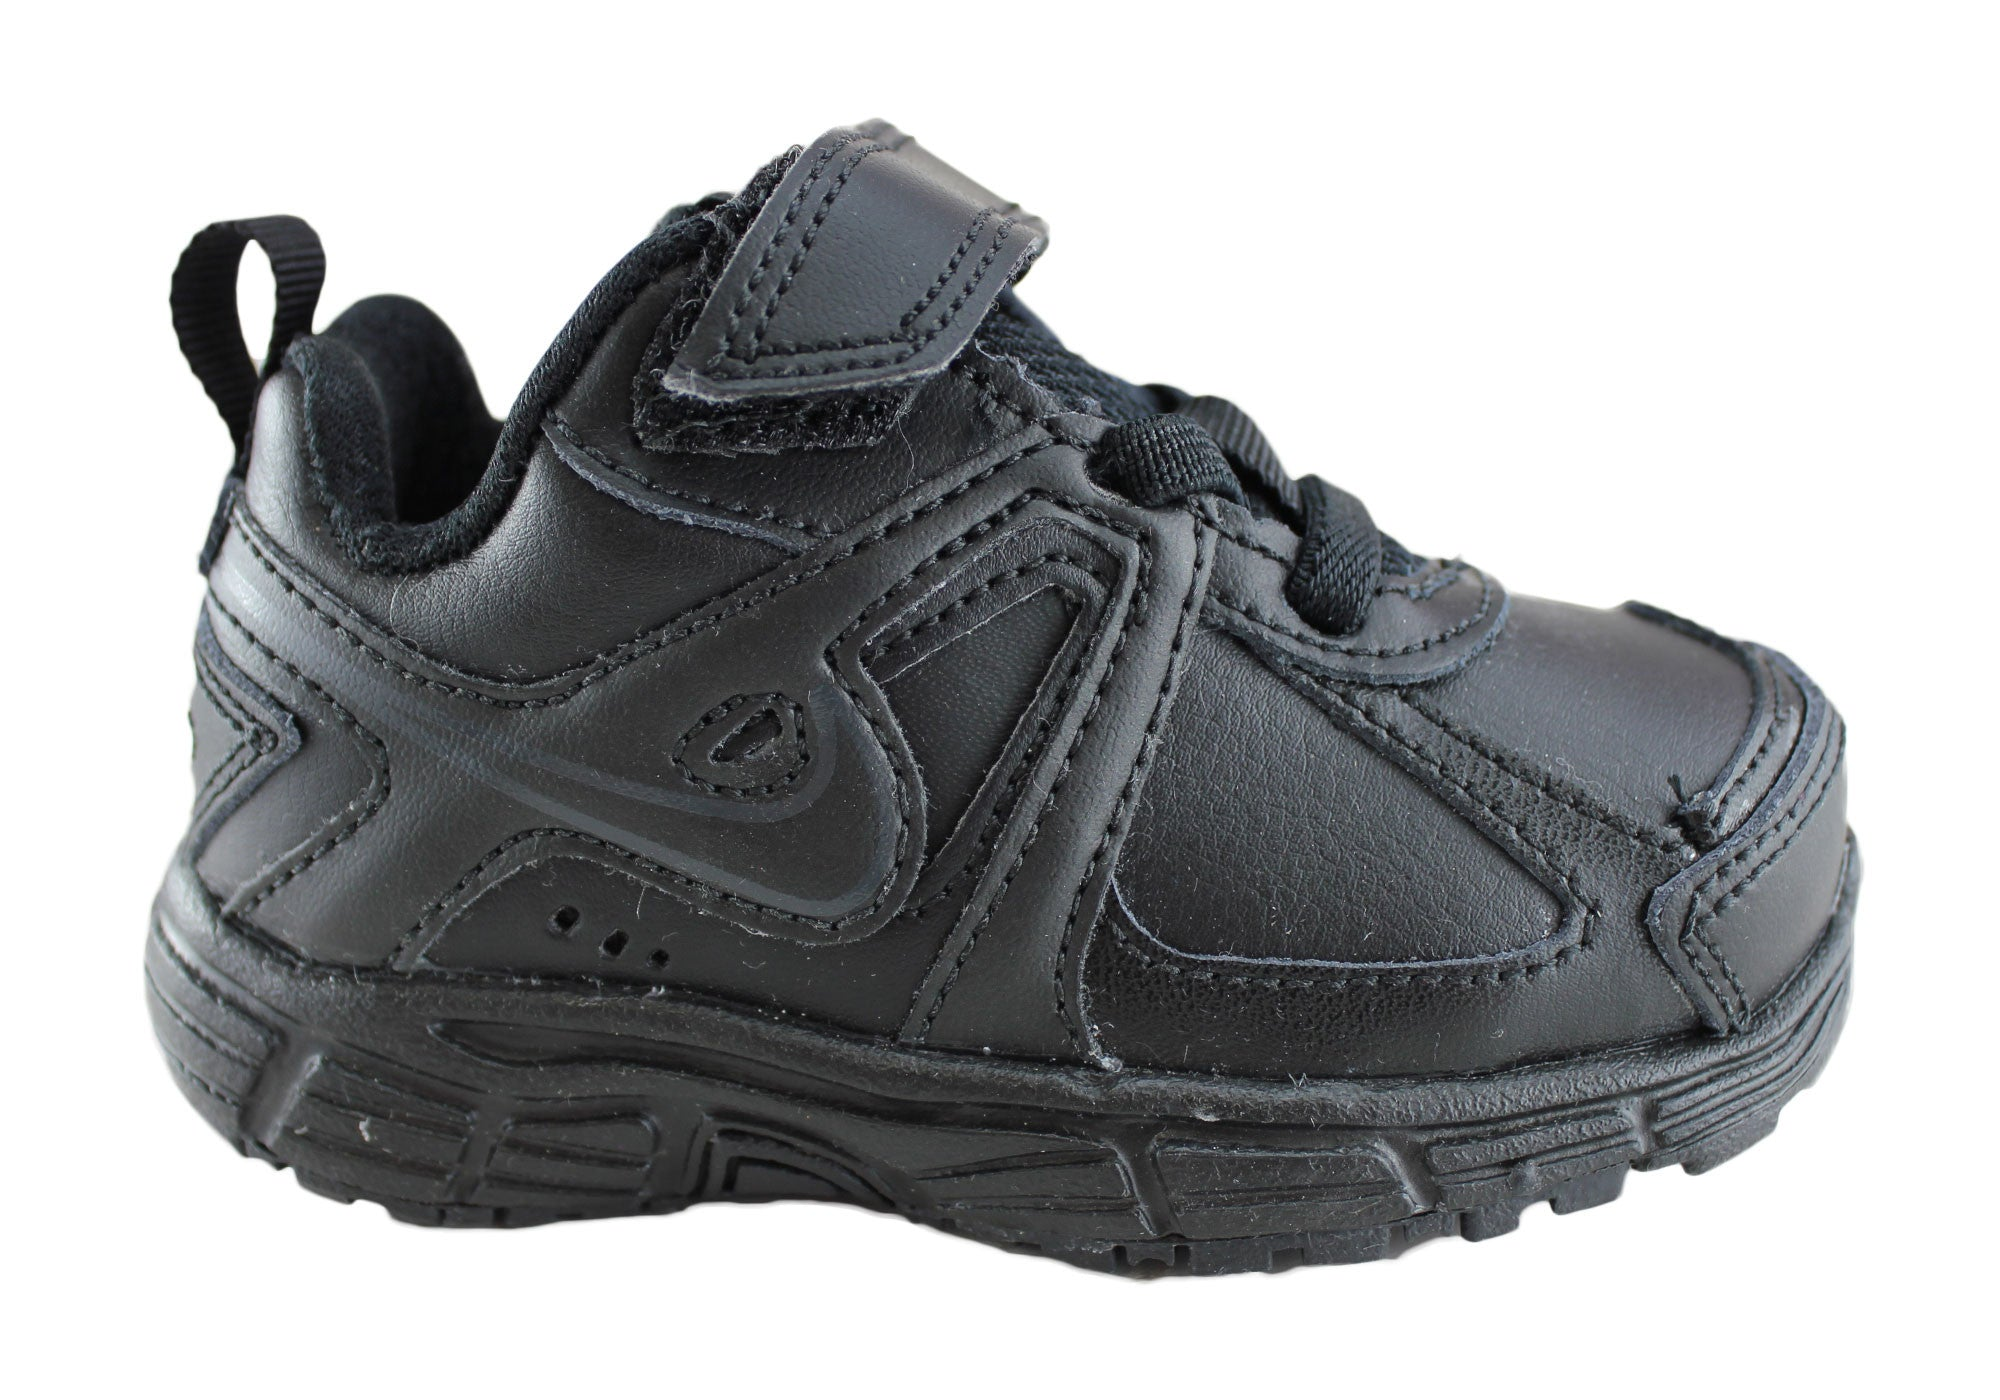 Nike Dart 9 Leather Toddler/Baby Shoes